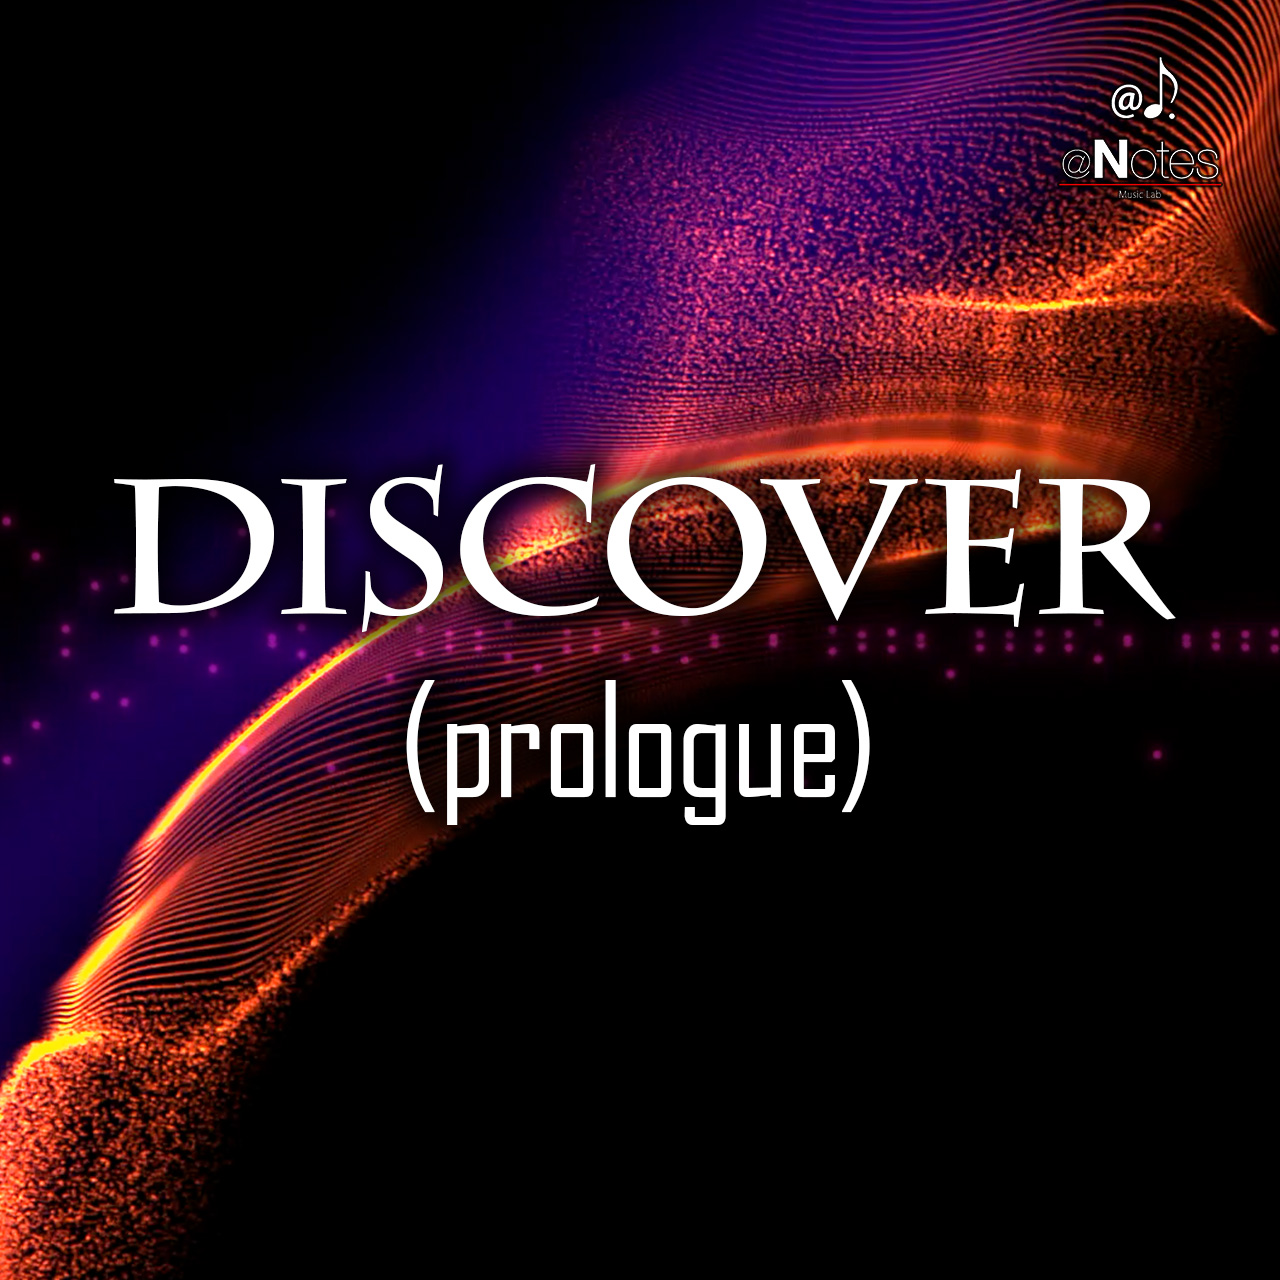 Discover_prologue